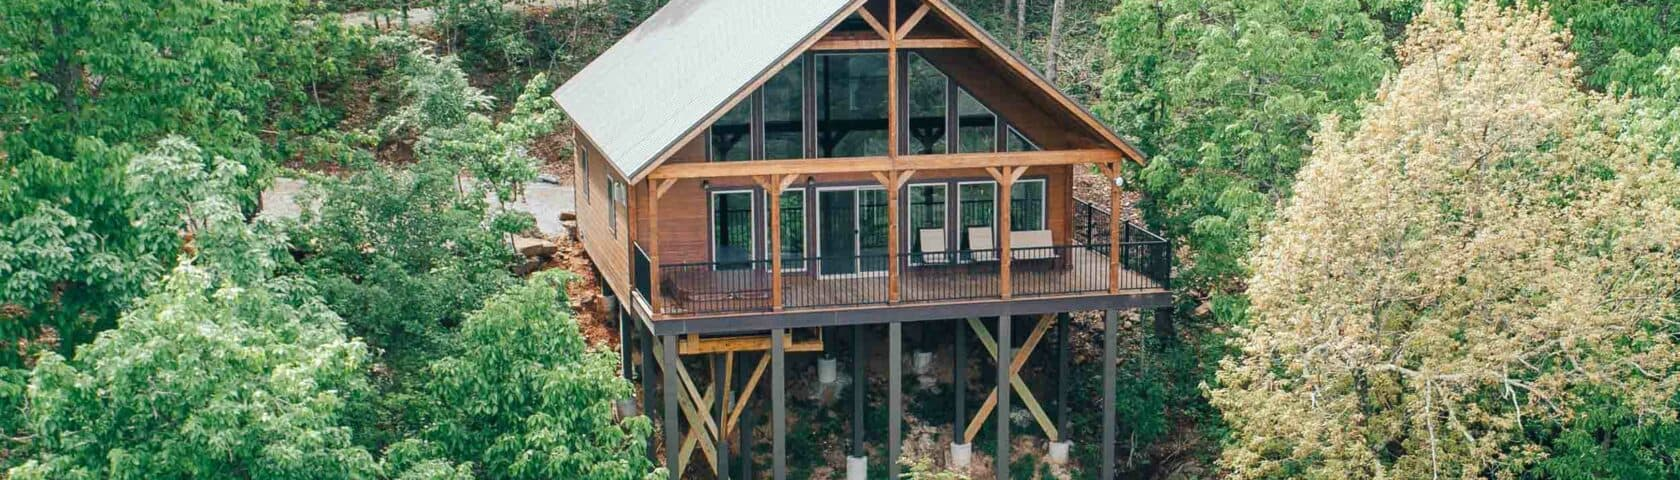 aerial view of a cabin in the woods